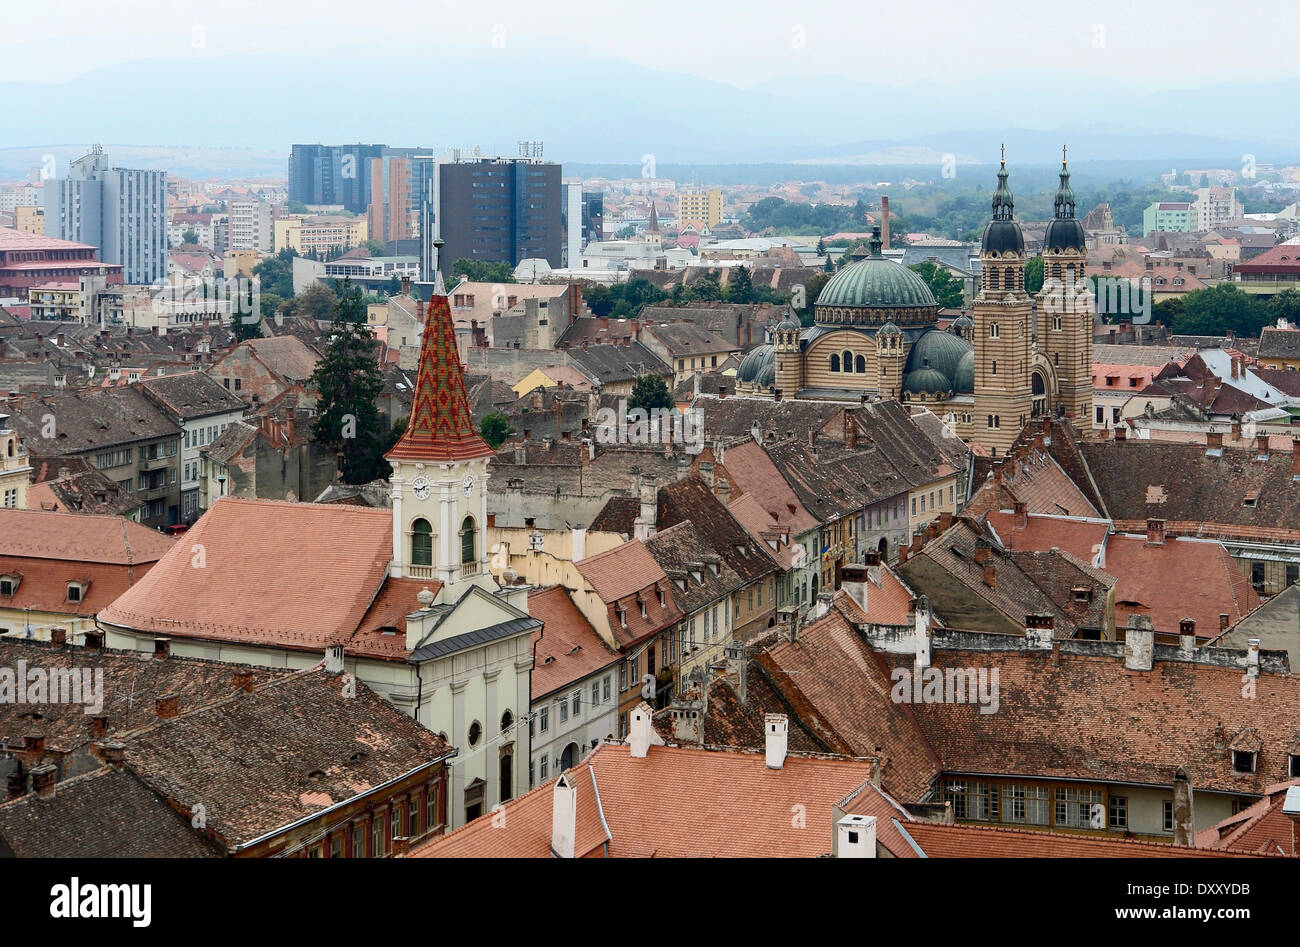 aerial view of Sibiu, a city in Romania Stock Photo